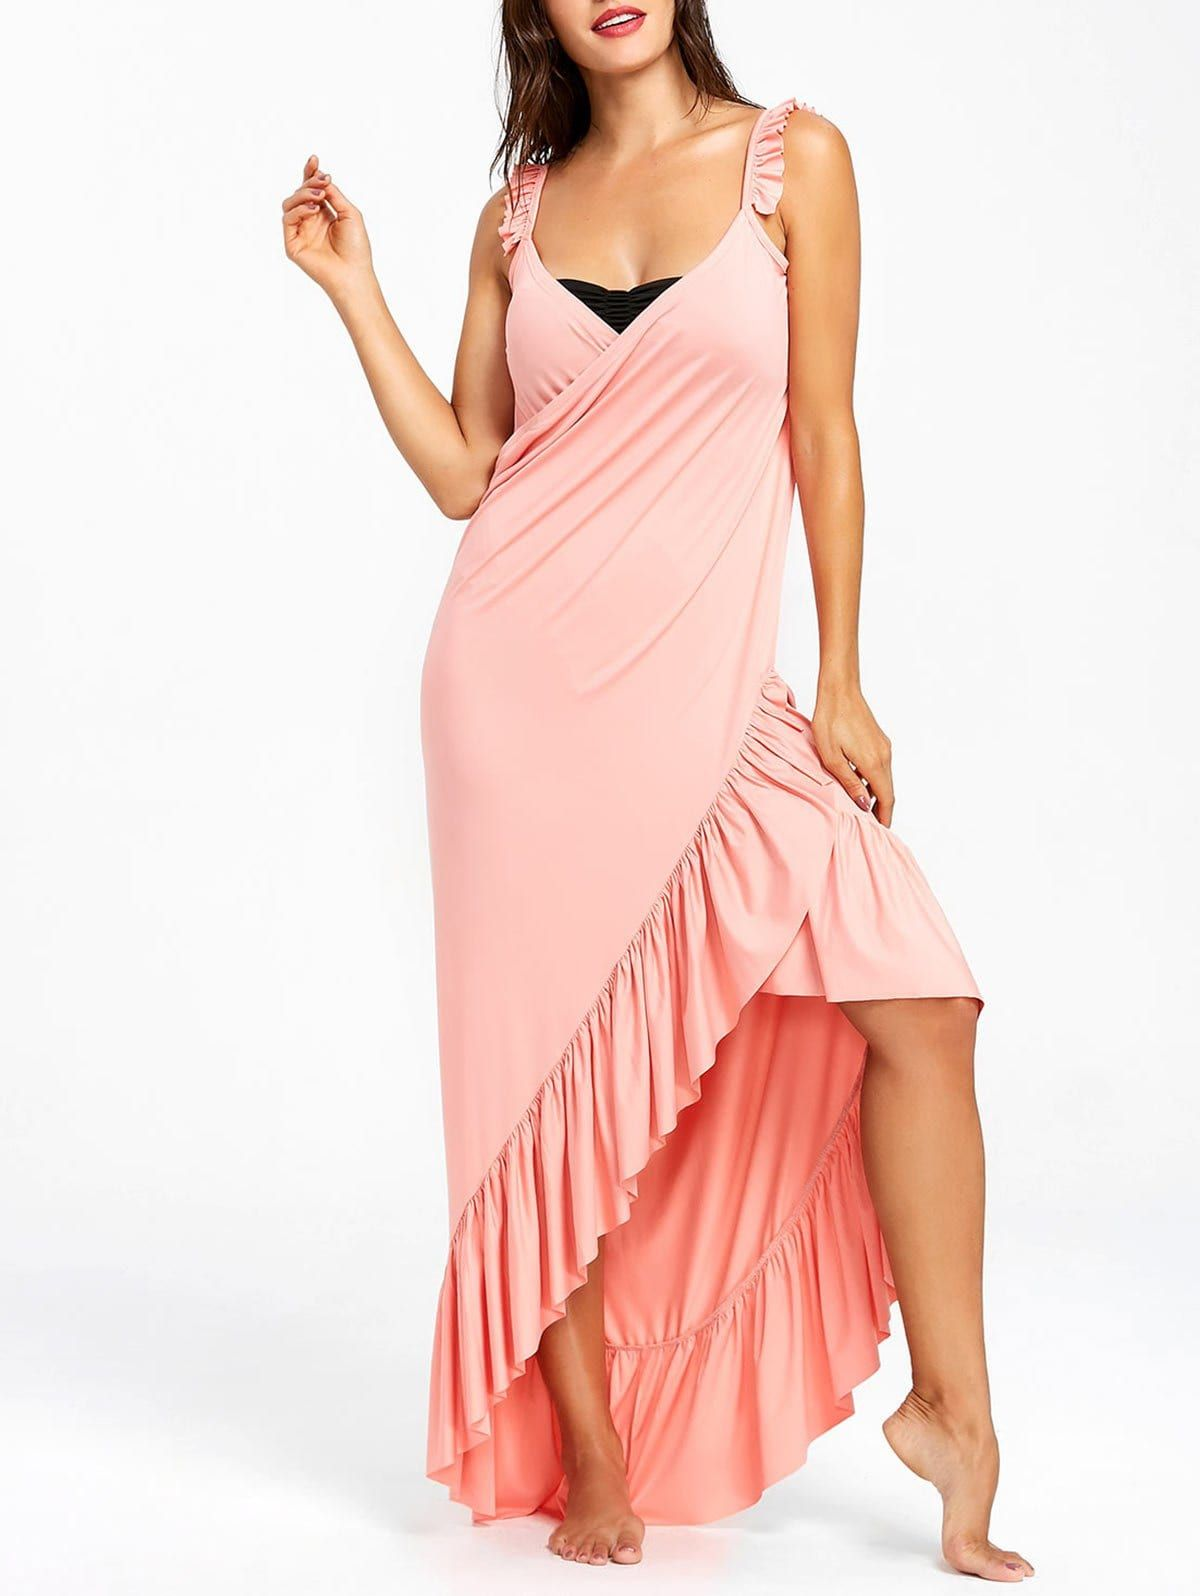 f6bbad1021 Wrap Flounce Beach Cover Up Dress - LIGHT PINK L | Dresslilly in ...